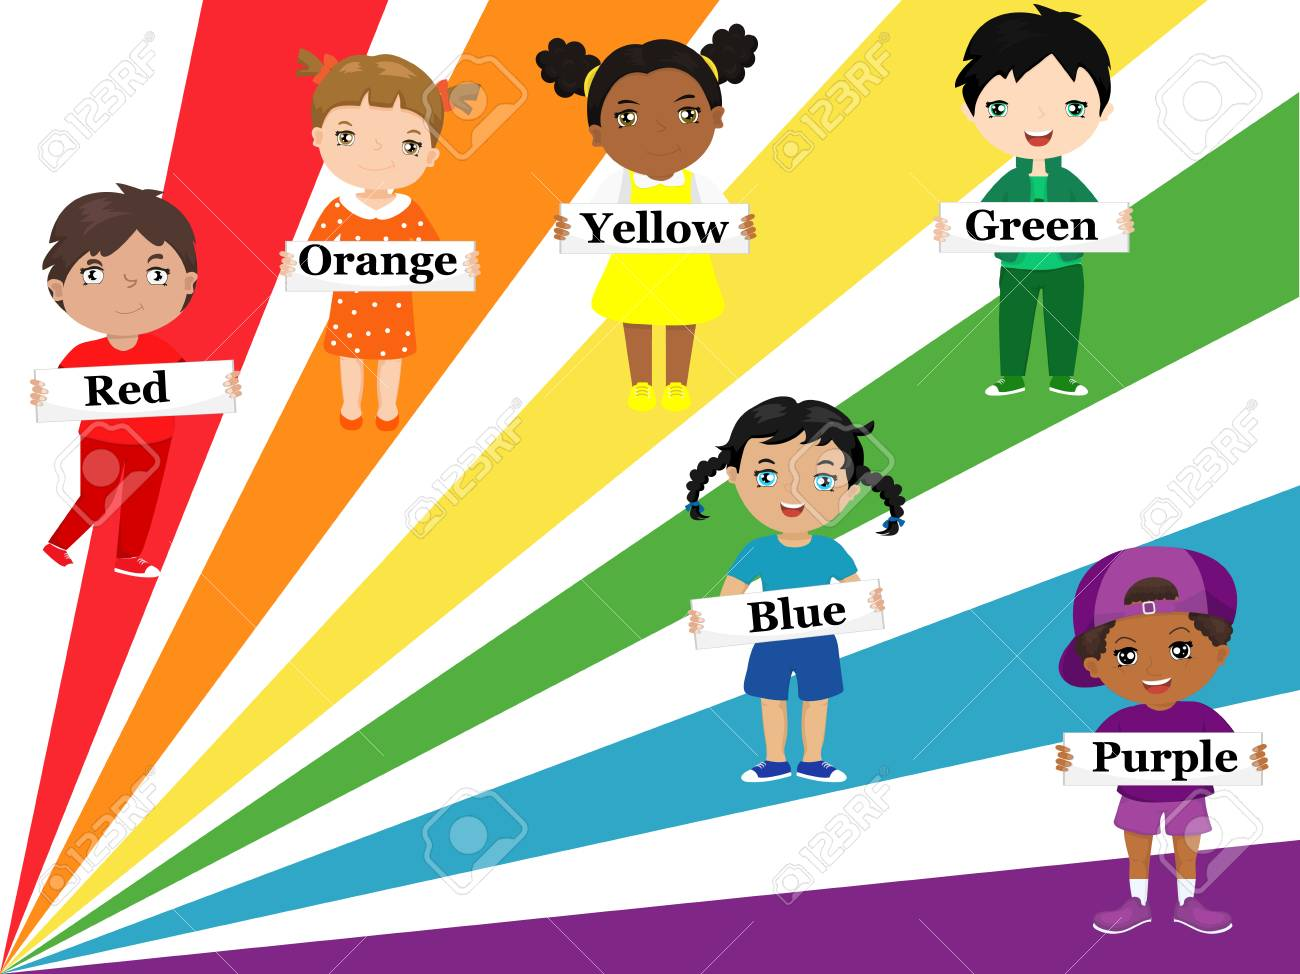 Children Of Different Races And Ethnic Groups Dressed In Rainbow Colors Hold Posters With Color Names